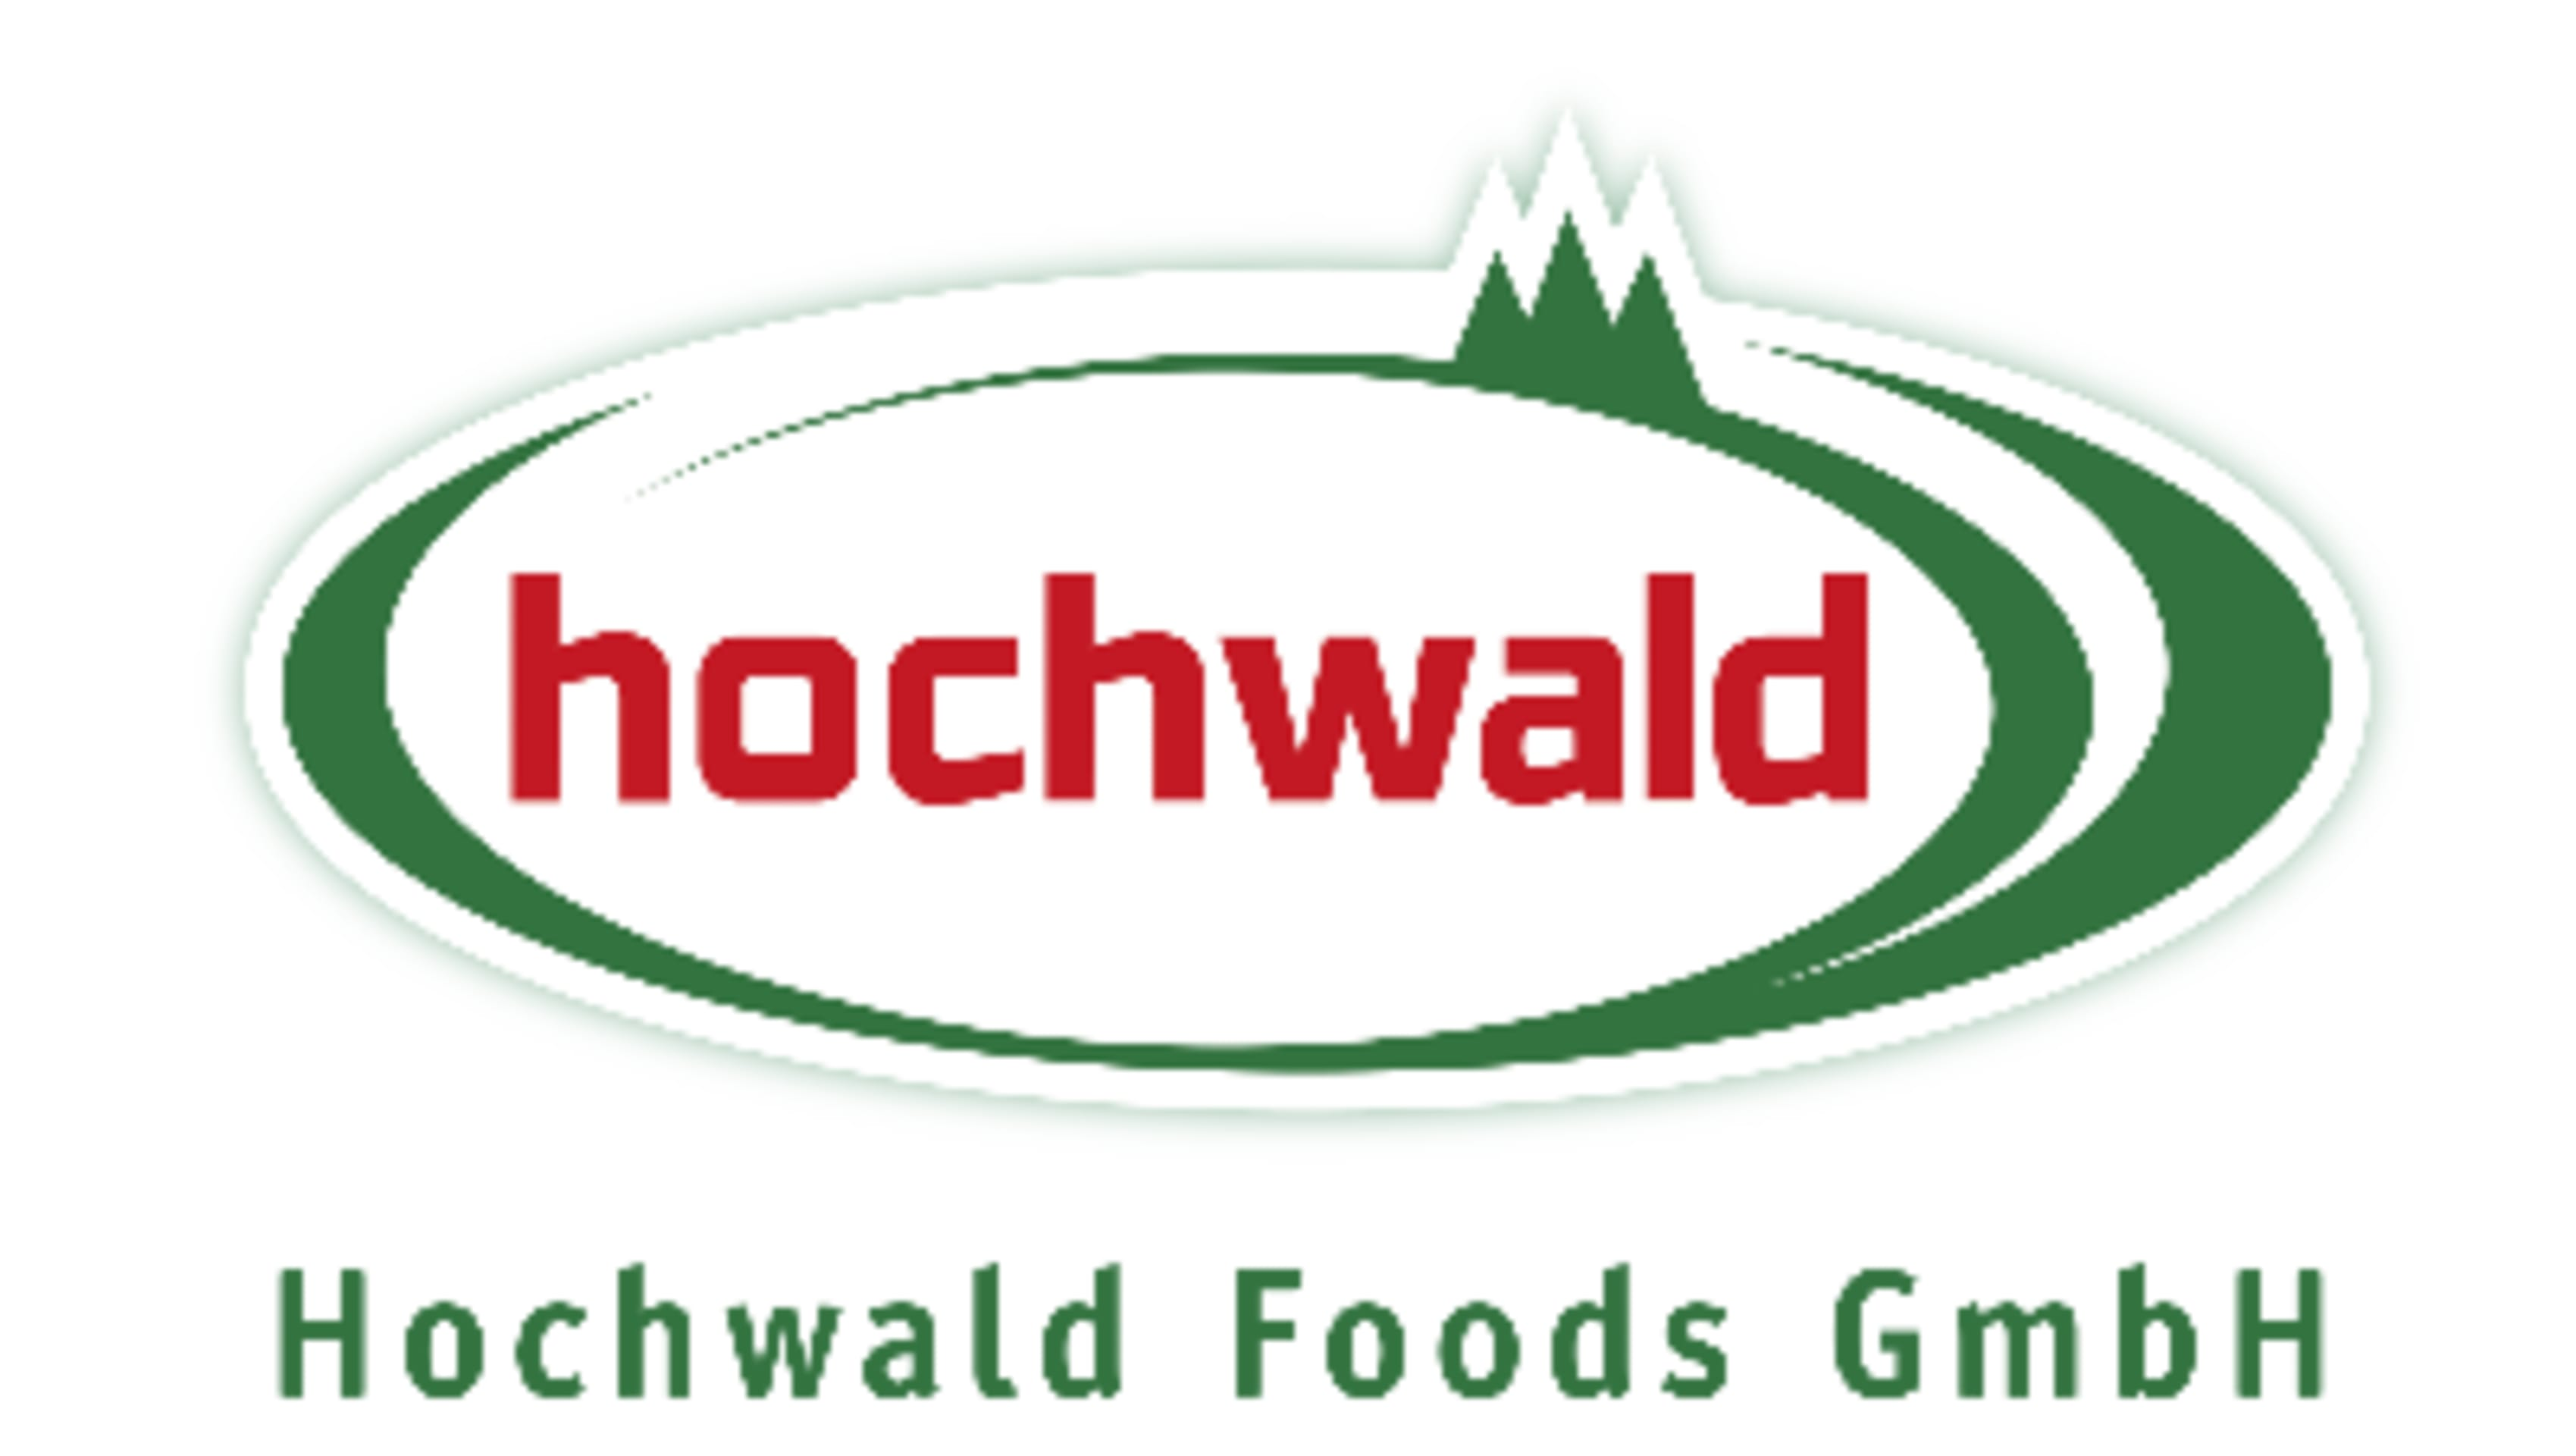 shows the logo from the company Hochwald Foods GmbH